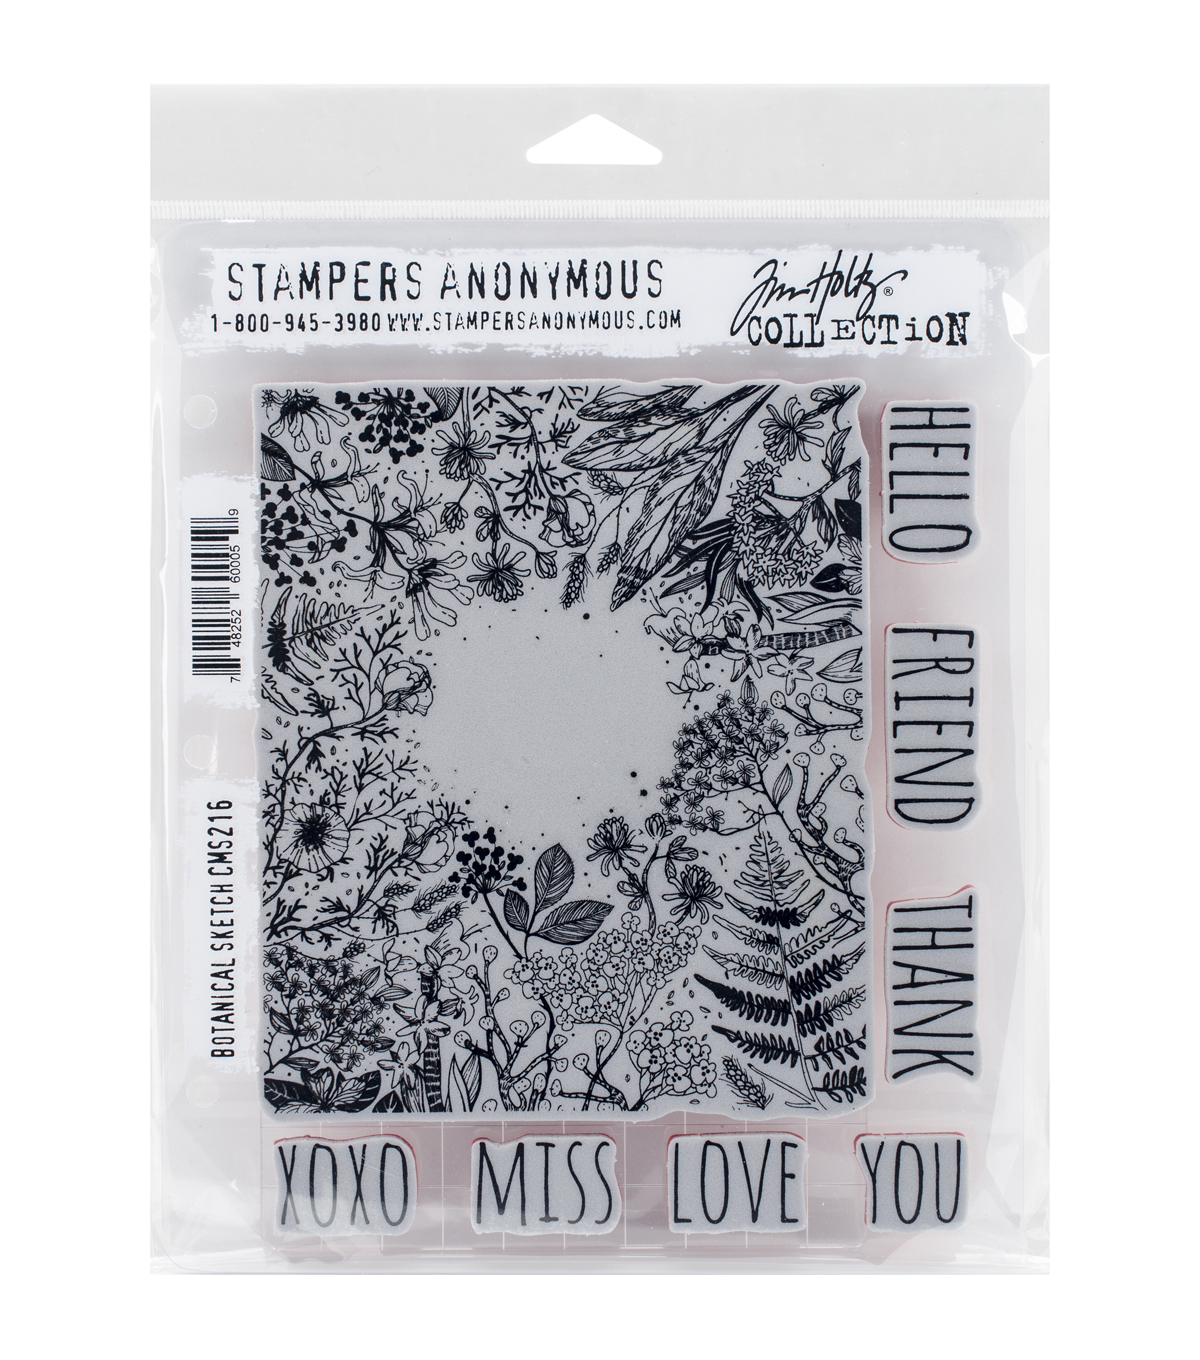 Tim Holtz Cling Stamps 7\u0022X8.5\u0022-Botanical Sketch